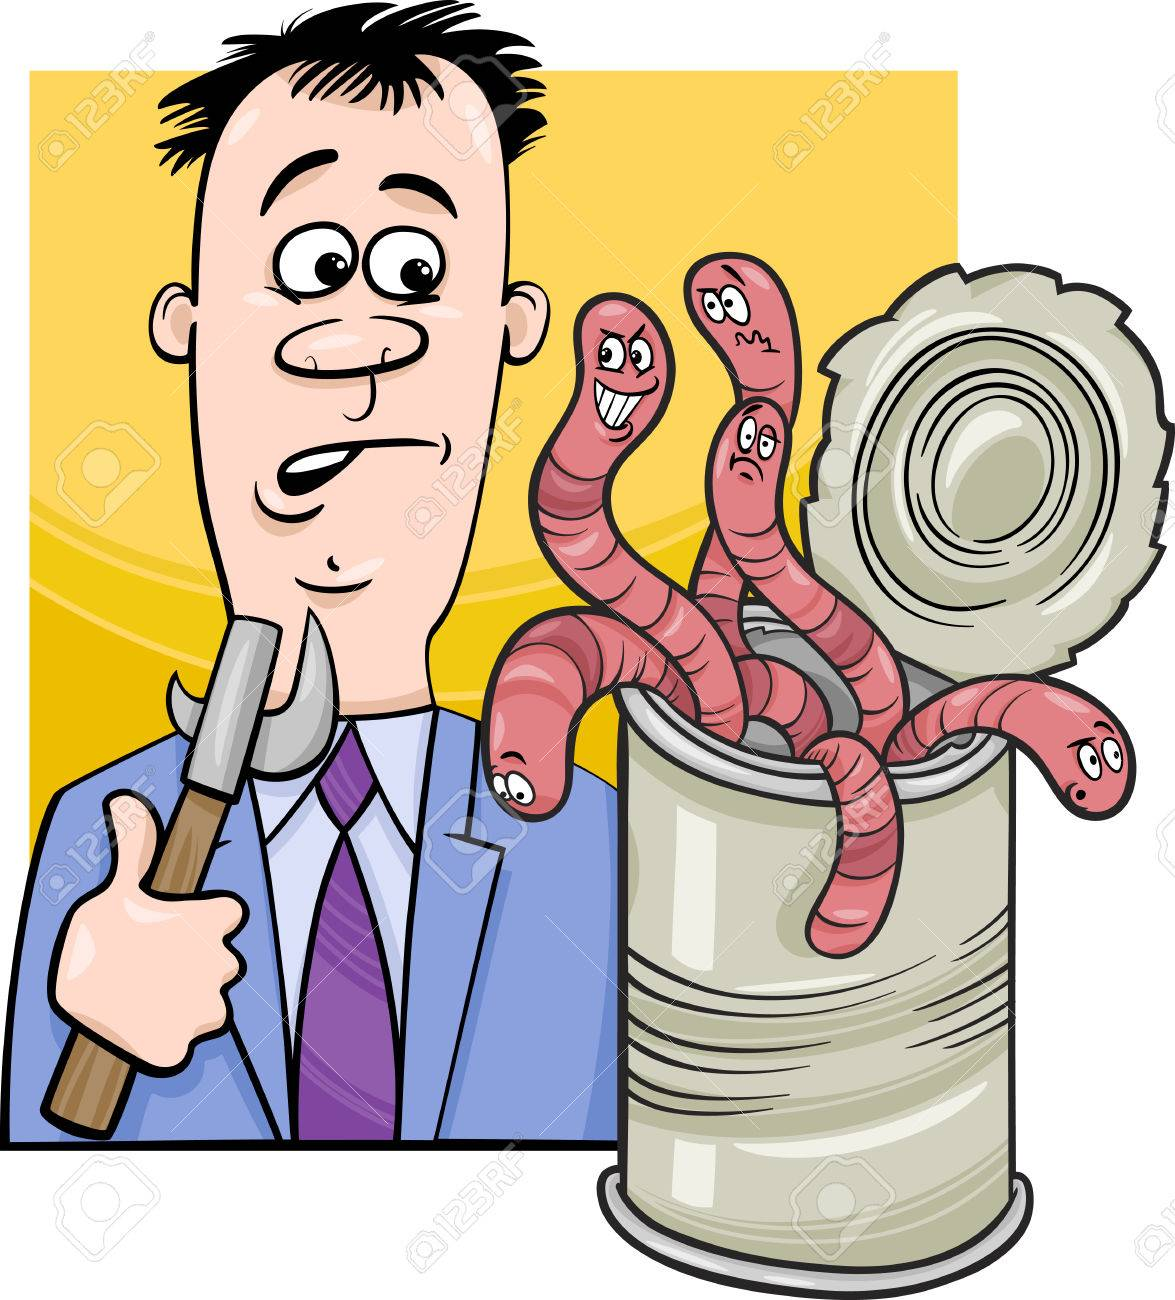 Cartoon Humor Concept Illustration Of Open Can Of Worms Saying